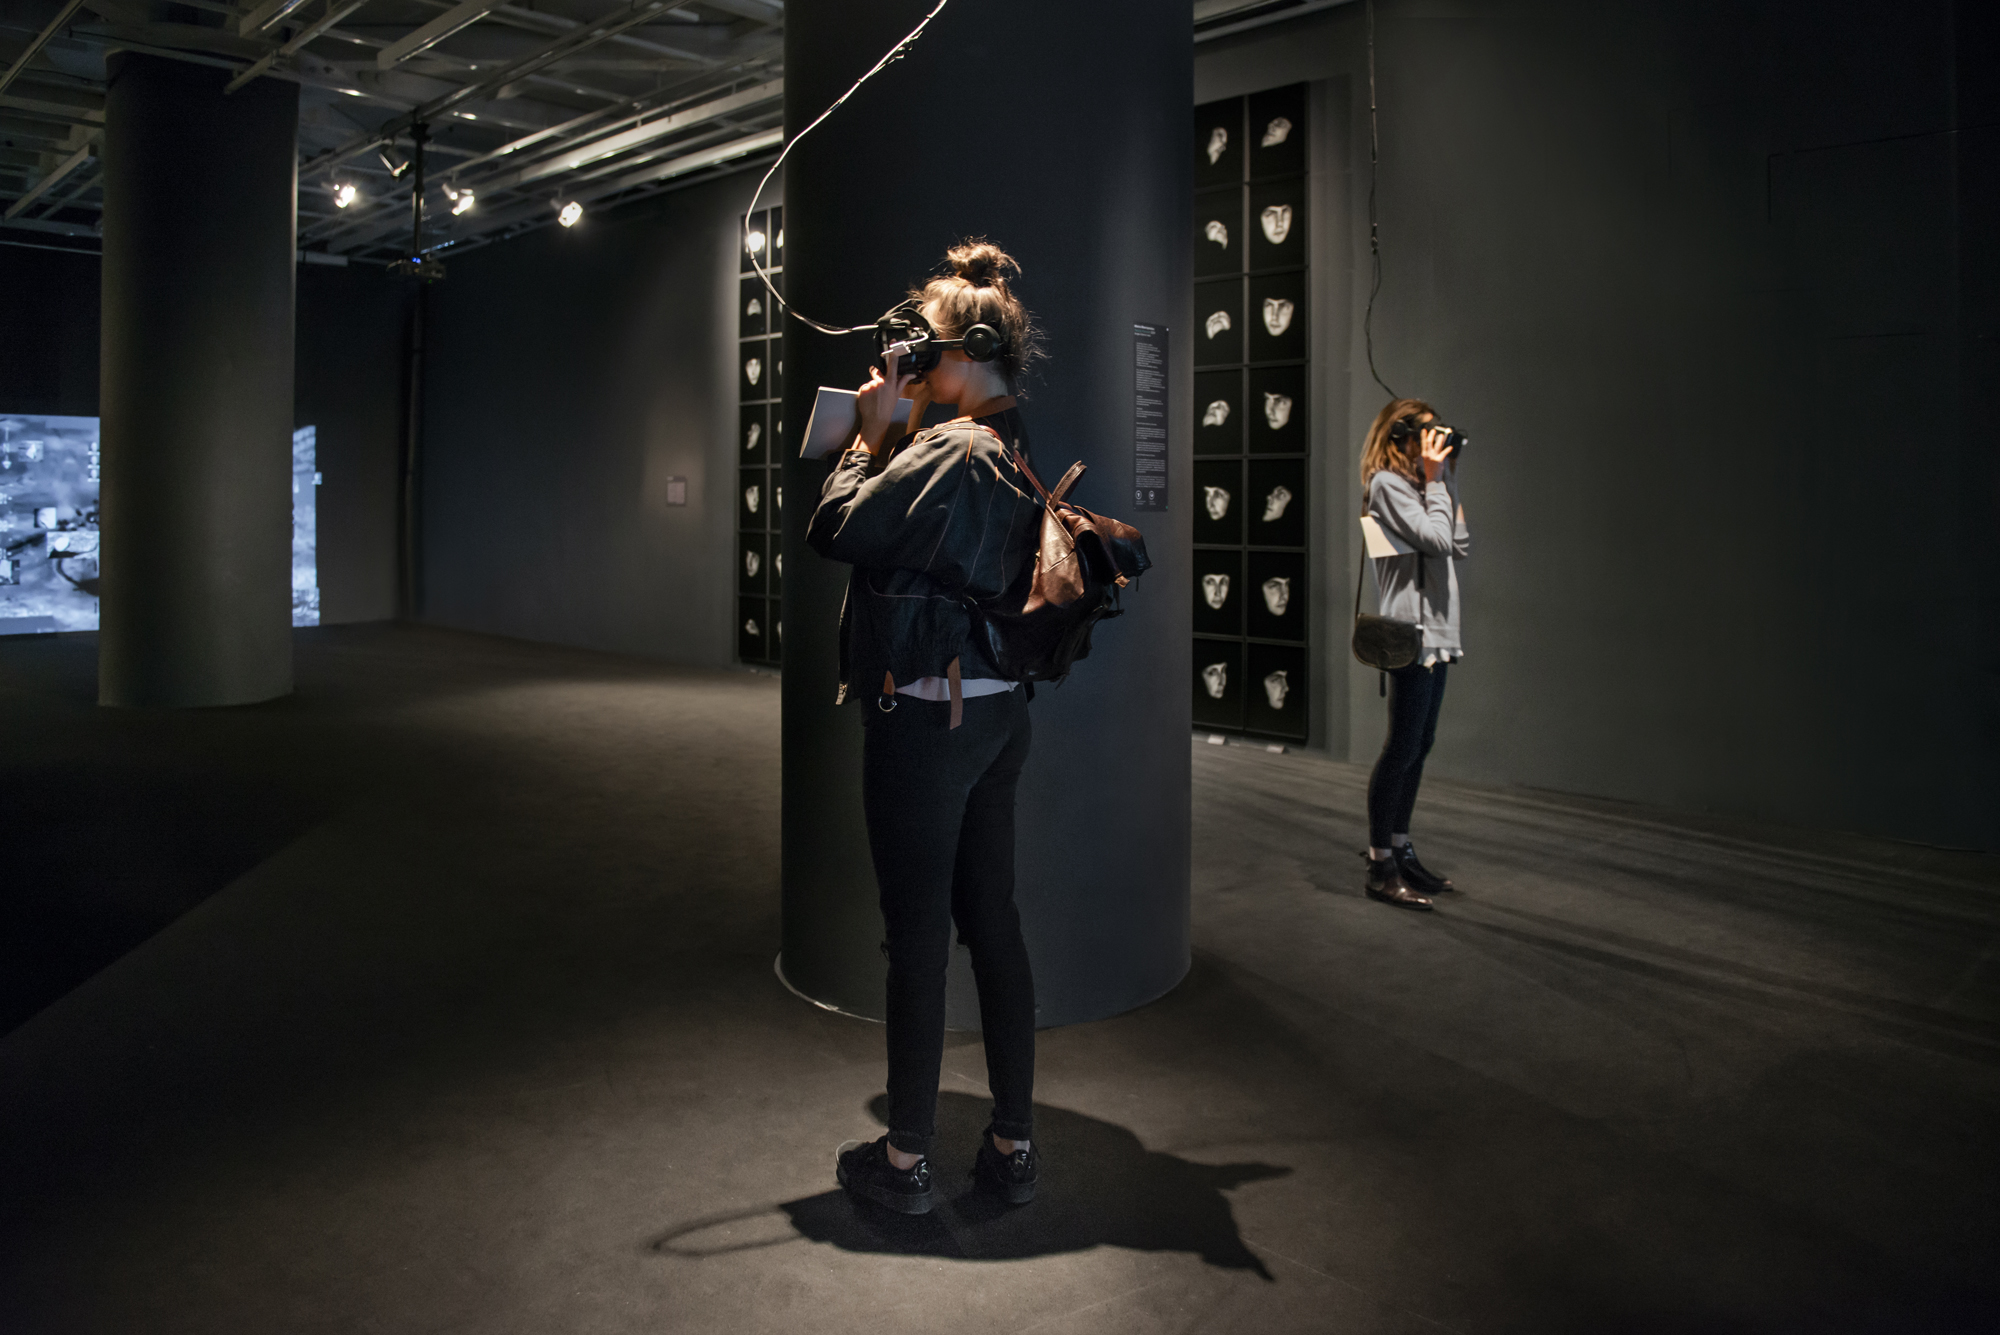 For ever more images?, Maria Mavropoulou, Family Portraits virtual tour, art exhibition, Onassis cultural centre, Athens, Greece.